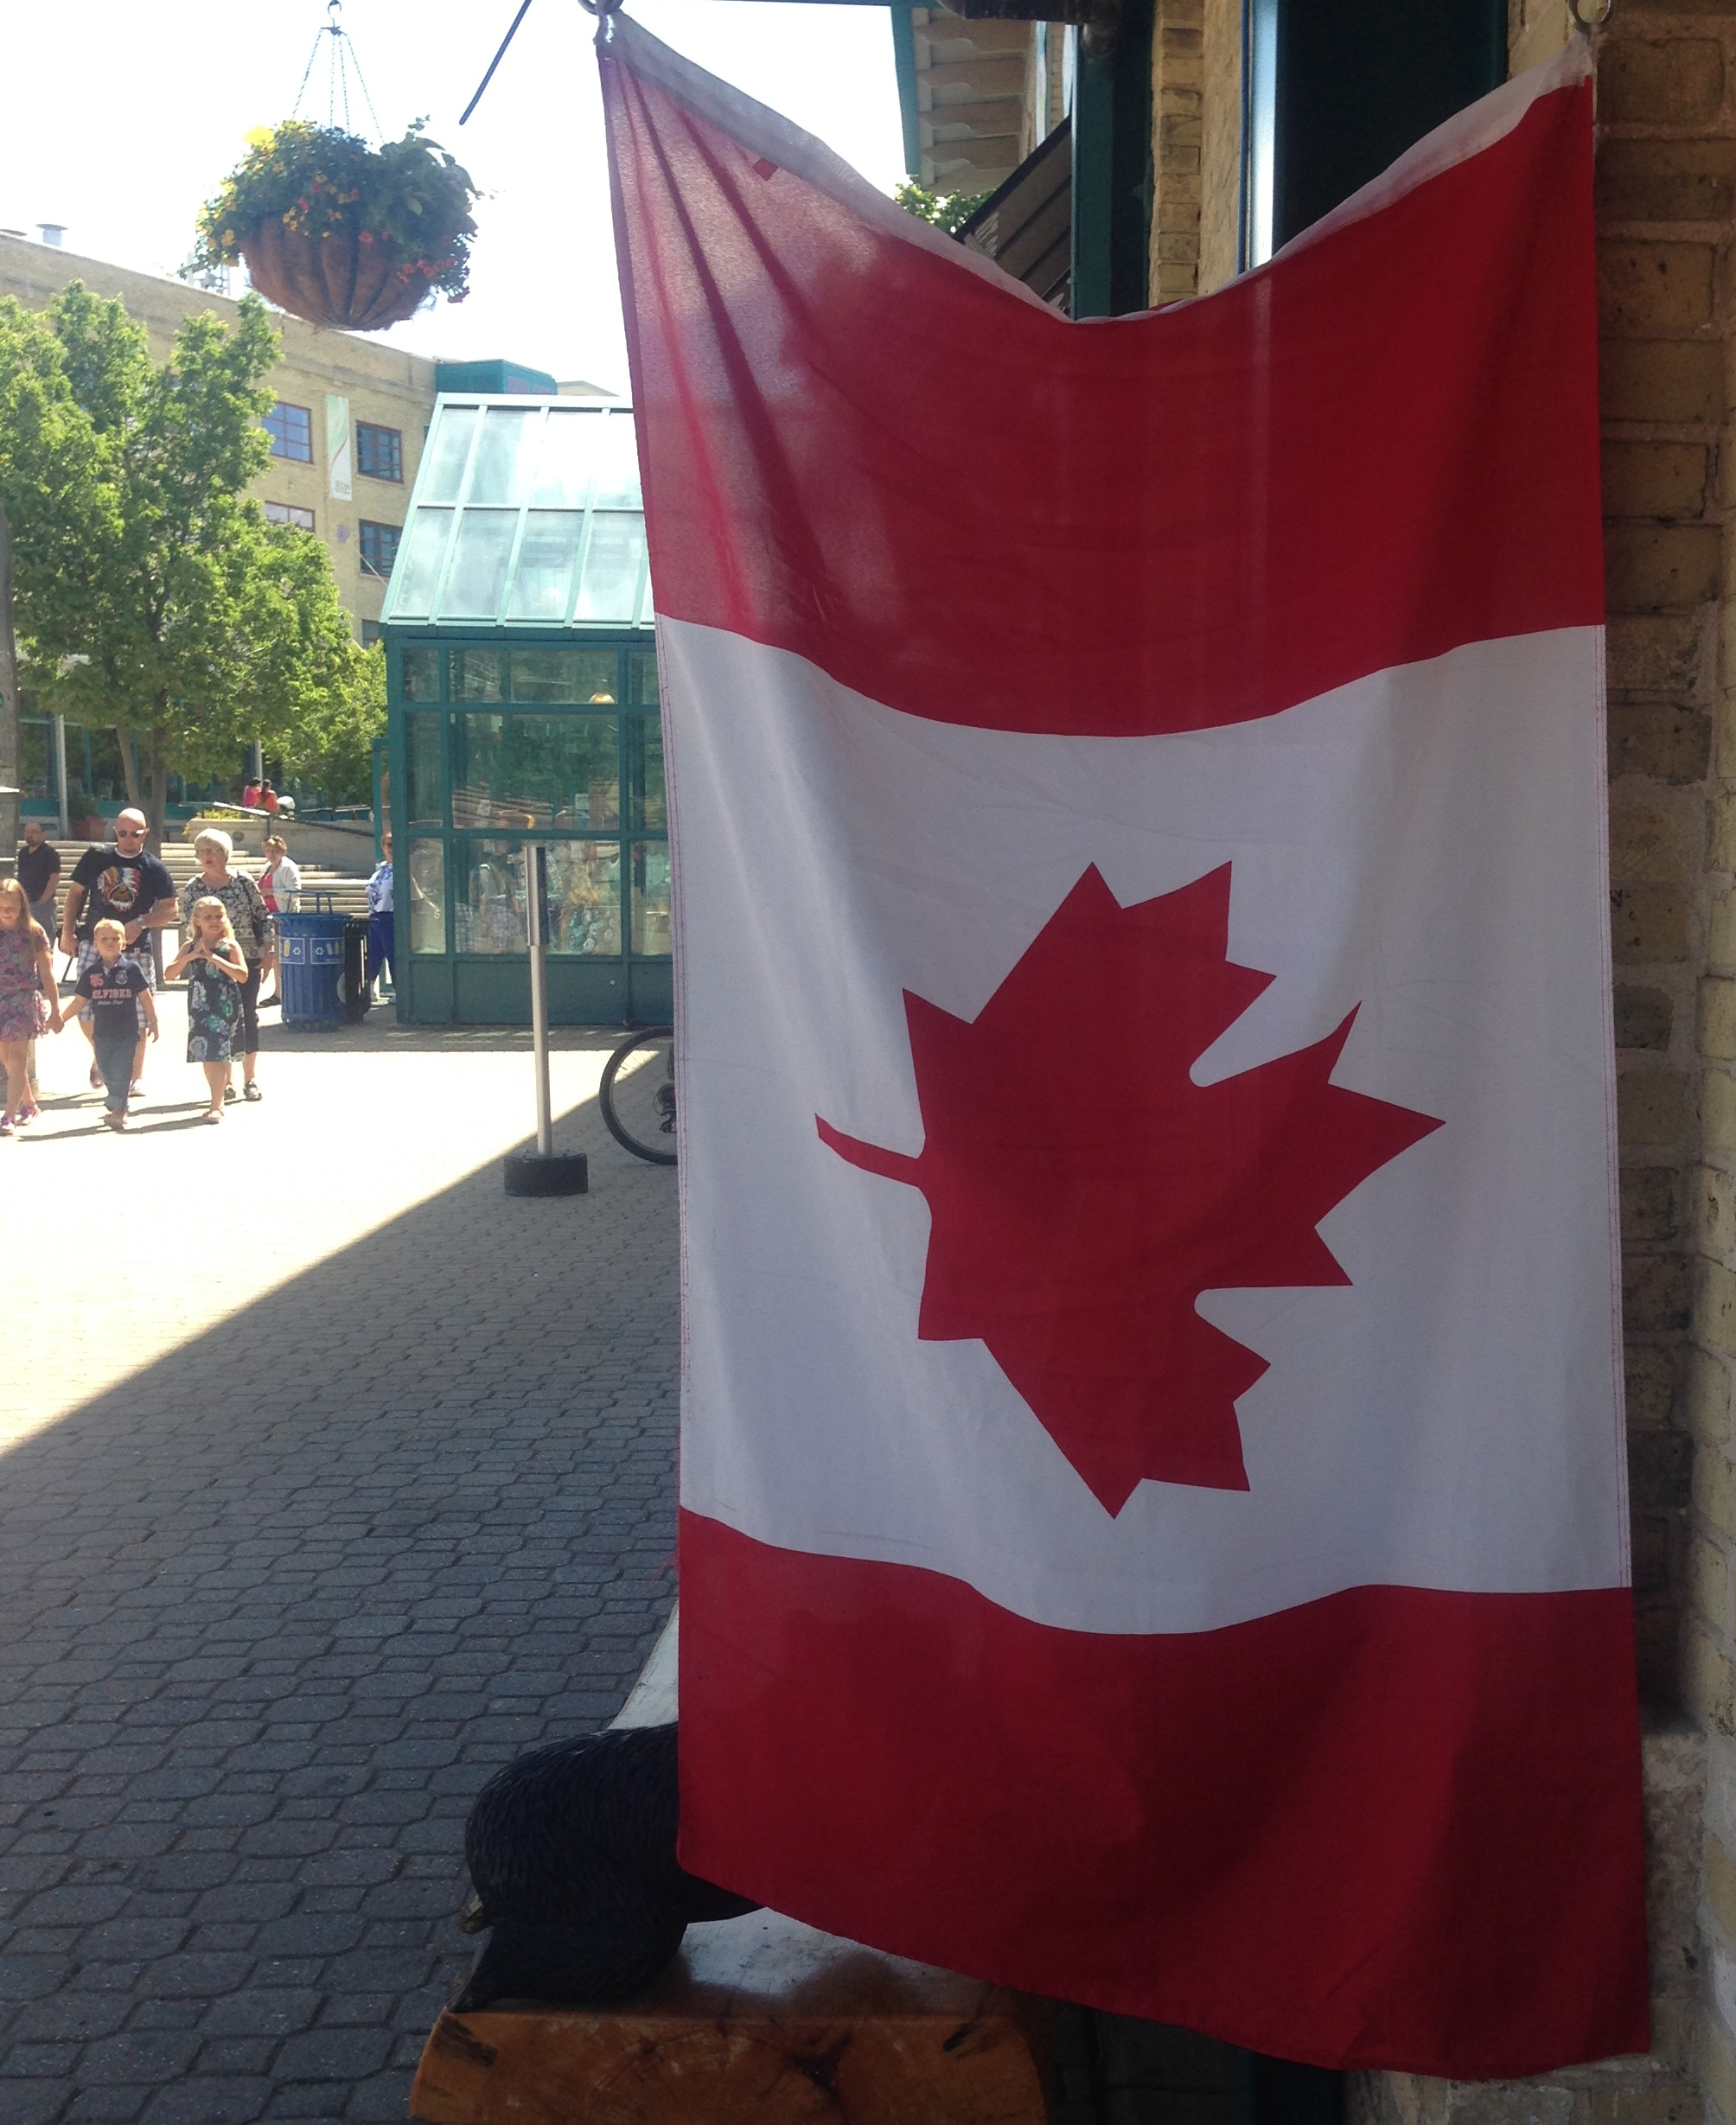 Canadian flag I encountered on my way back home.